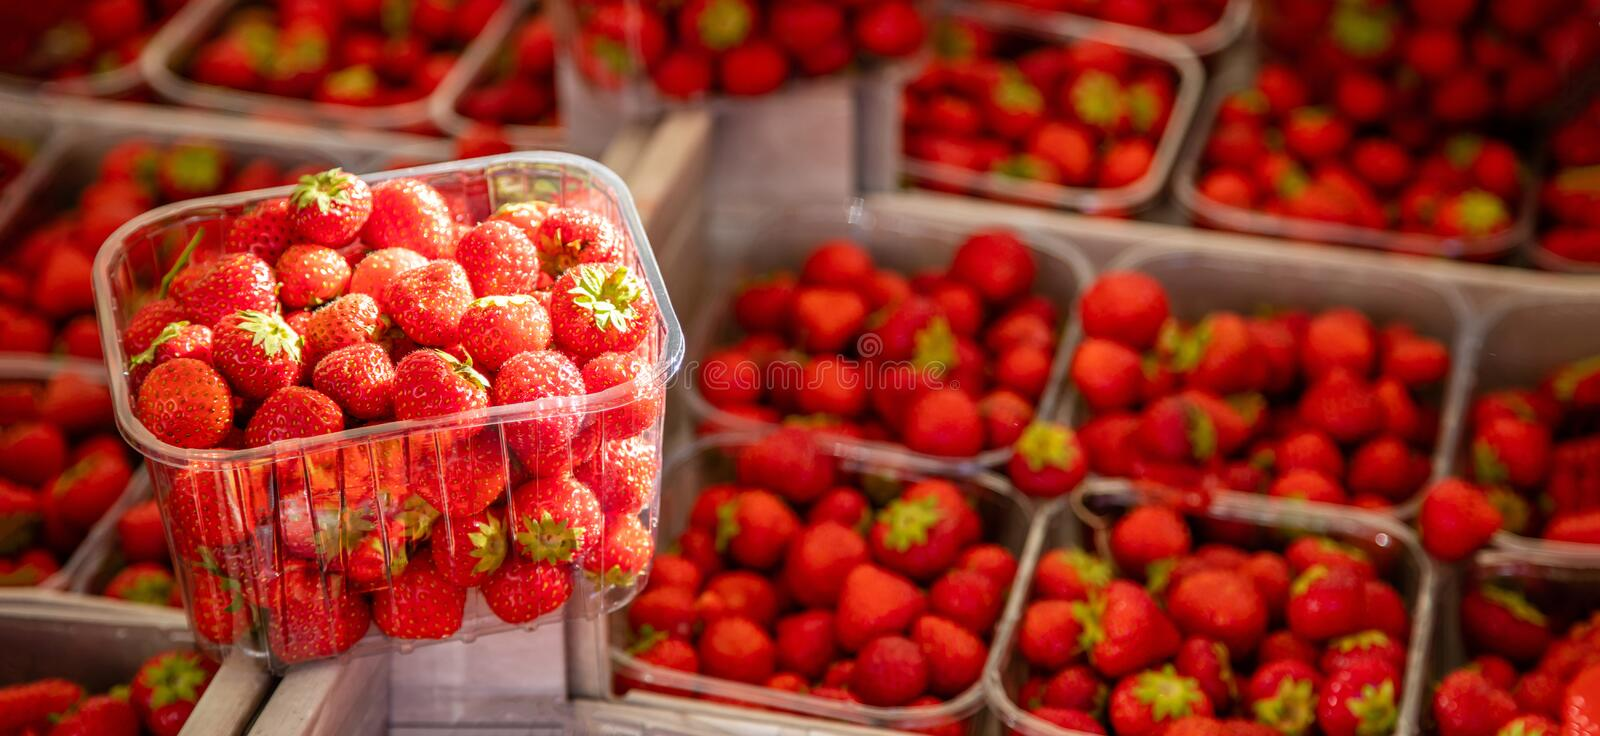 Strawberries in plastic containers at farmers market, background, texture. Strawberries in a plastic container at farmers market, blur strawberries background royalty free stock image